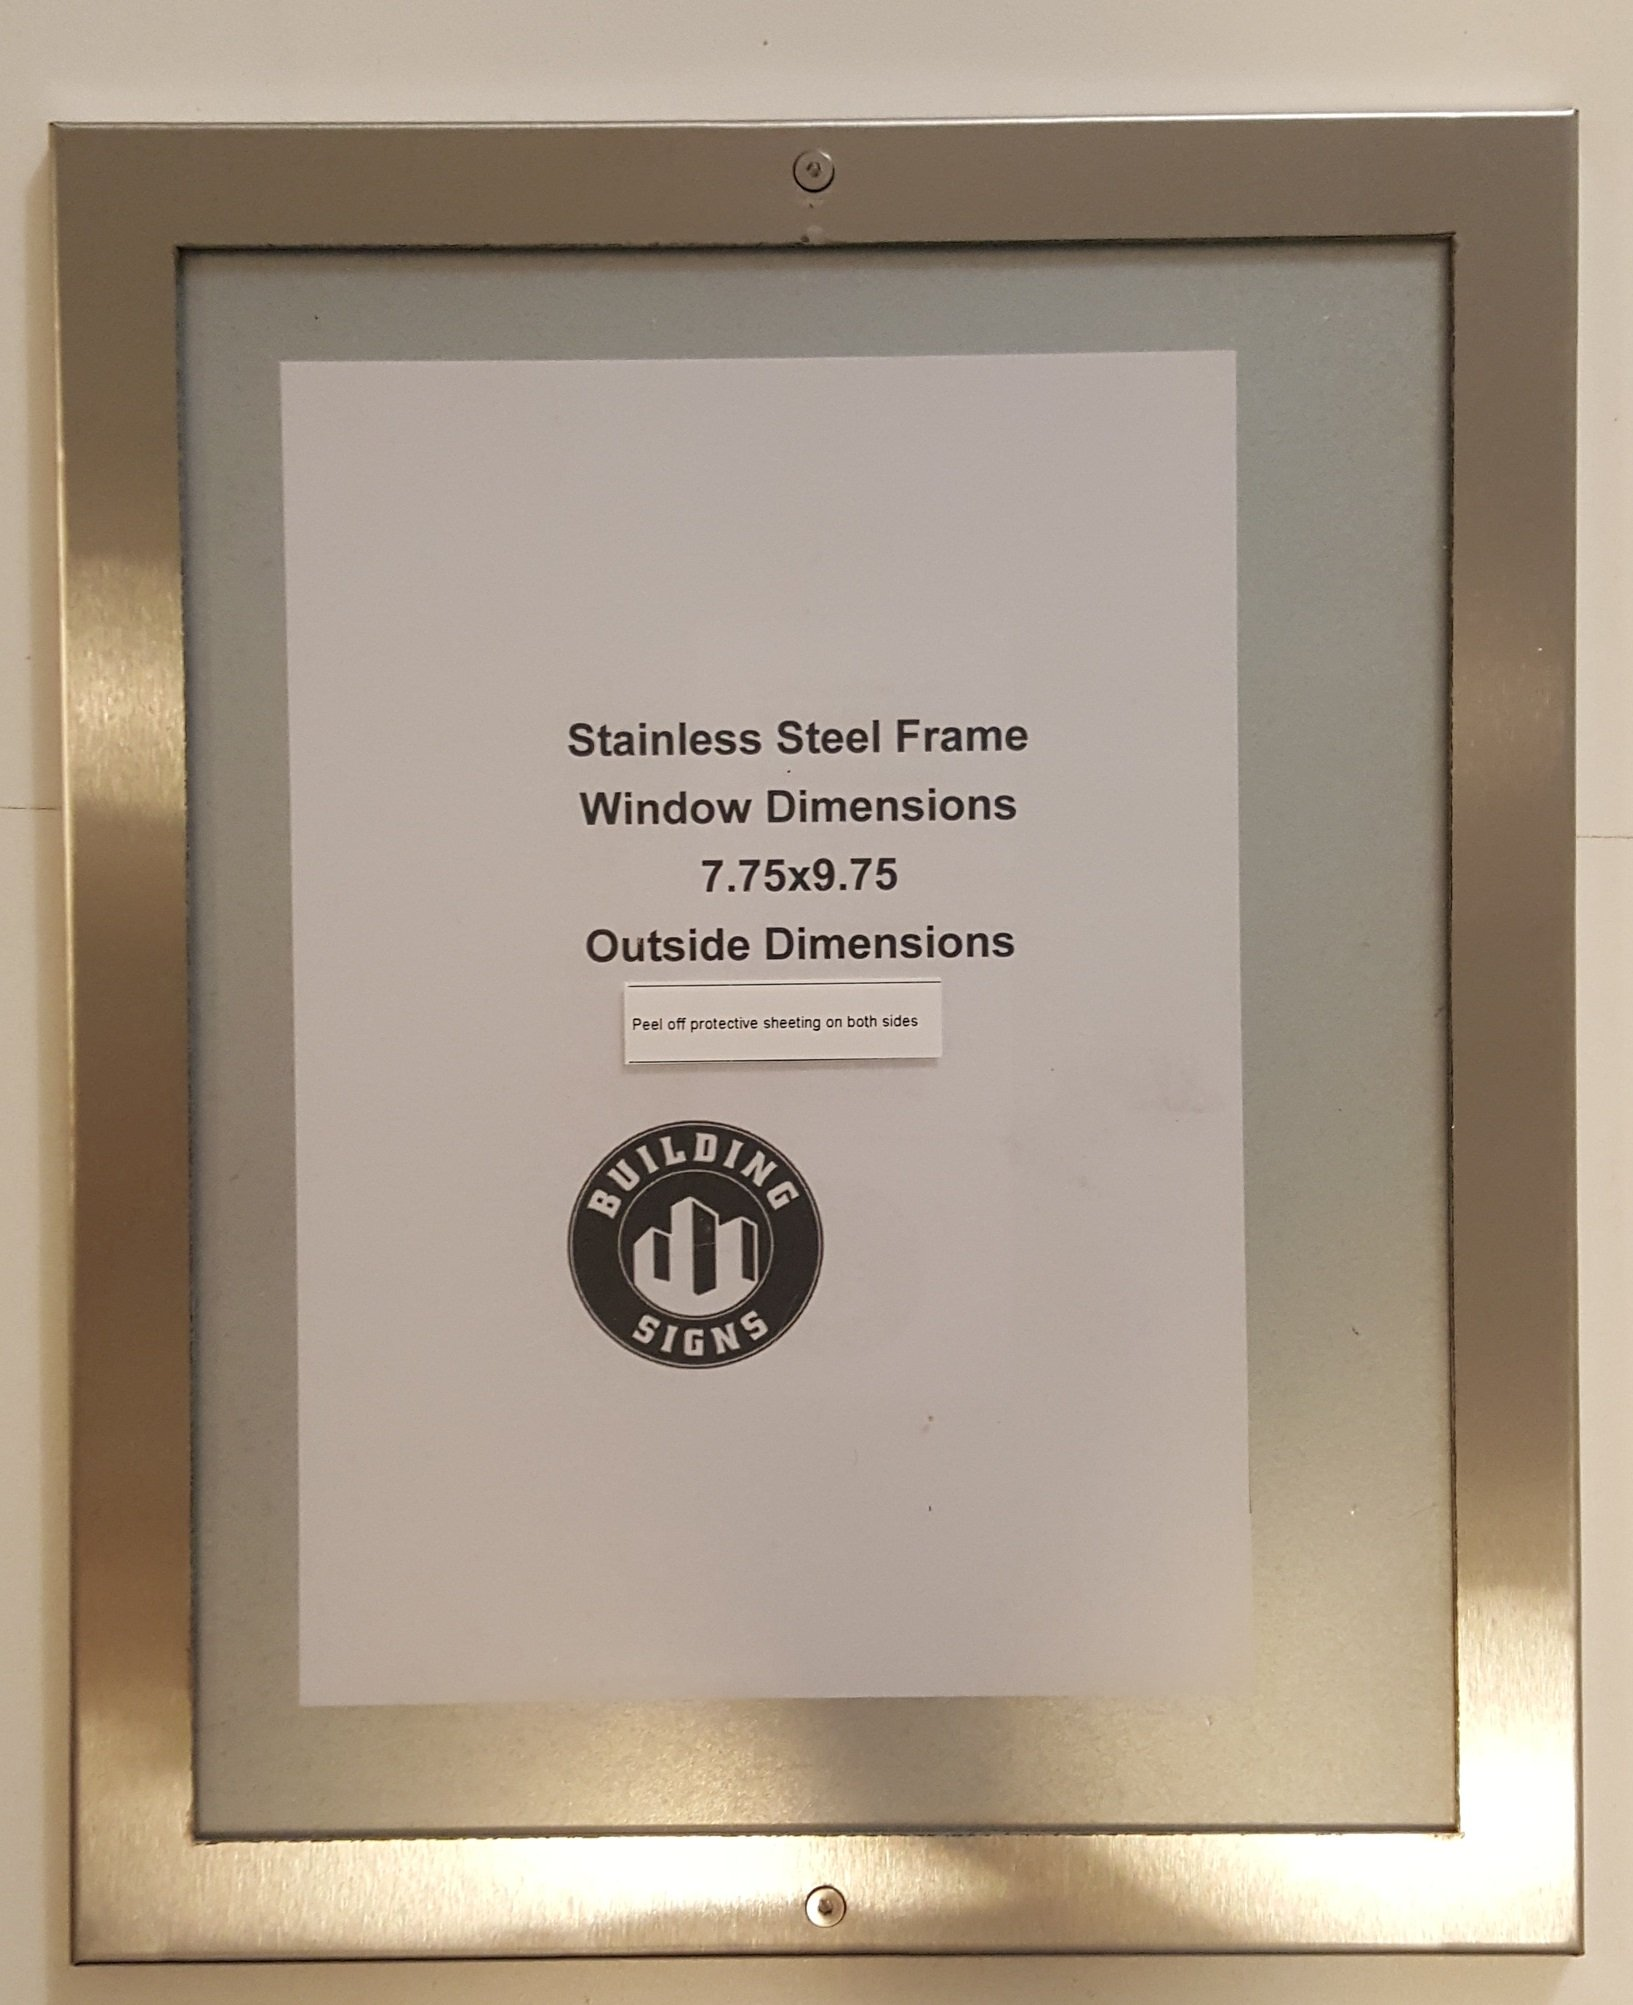 Elevator certificate frame 7.75 x 9.75 stainless Steel